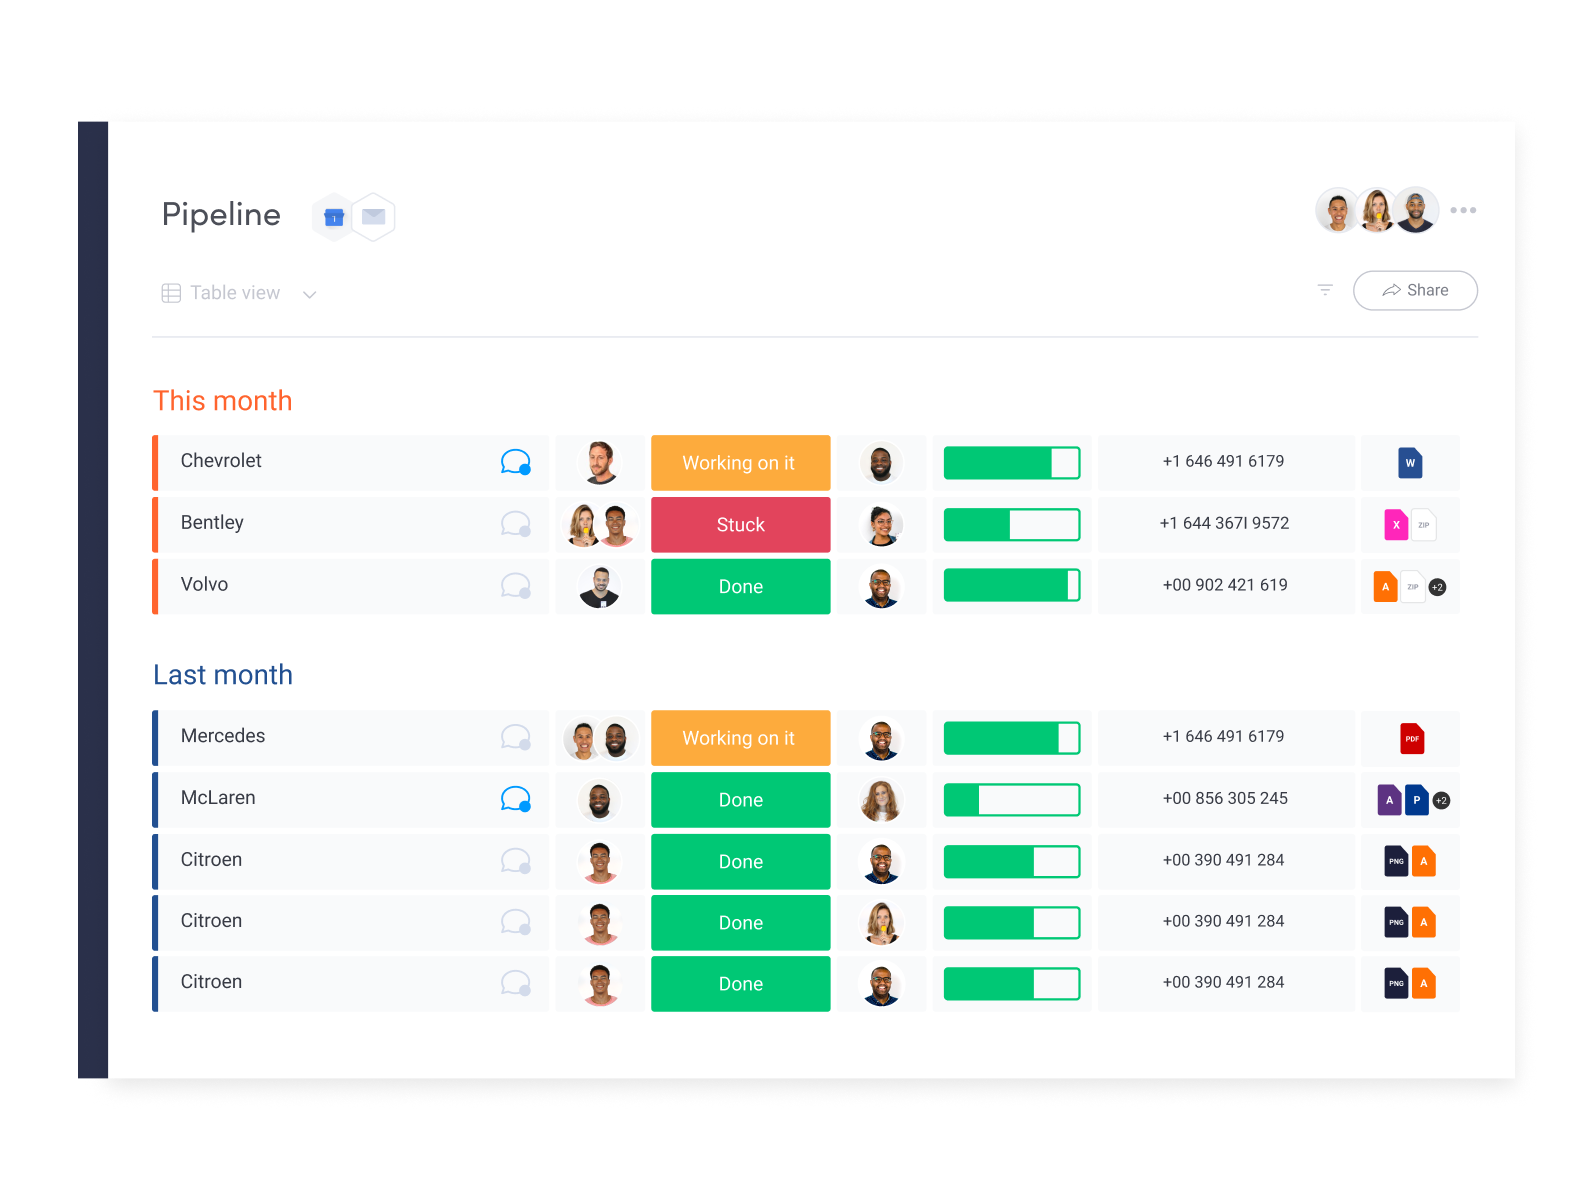 A new way to manage your CRM! Plan. Organize. Track. In one visual, collaborative space.